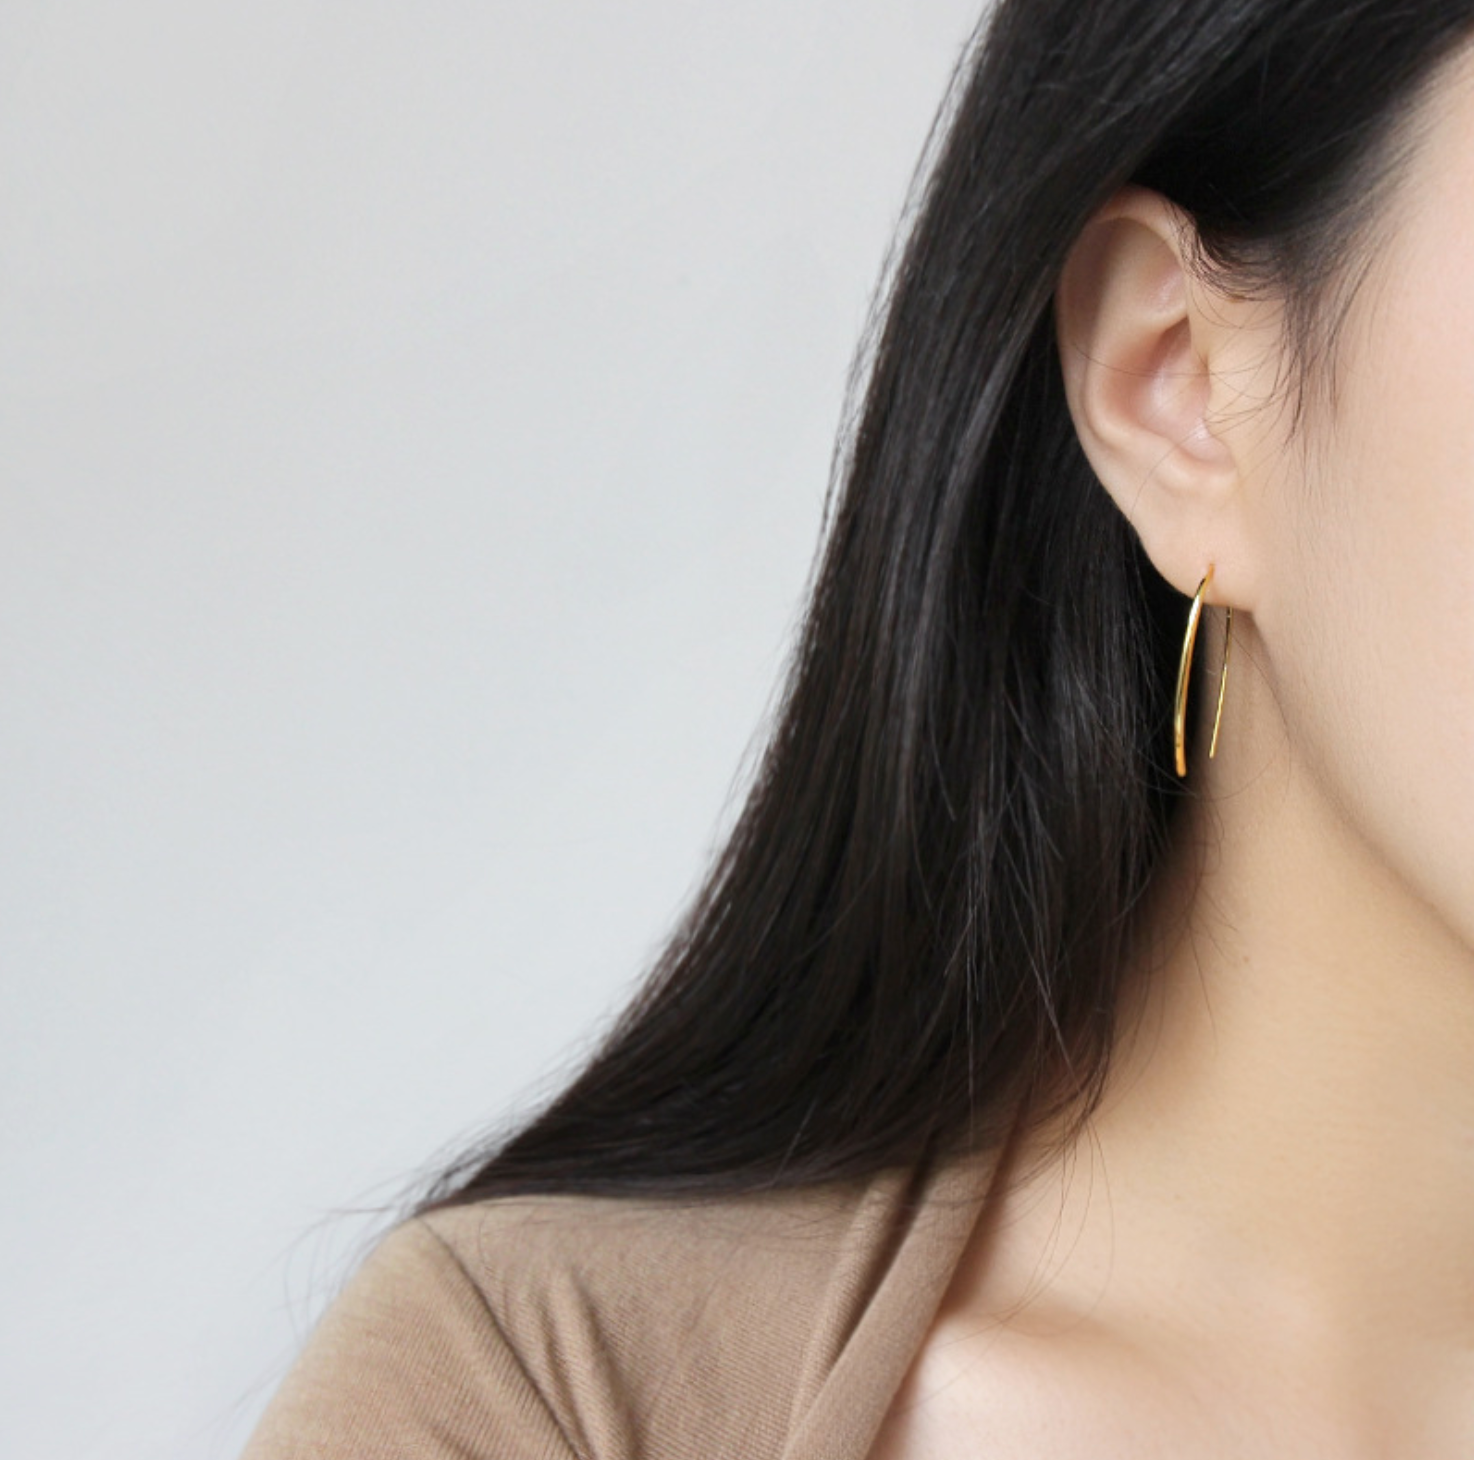 S925 U-Shaped Earrings